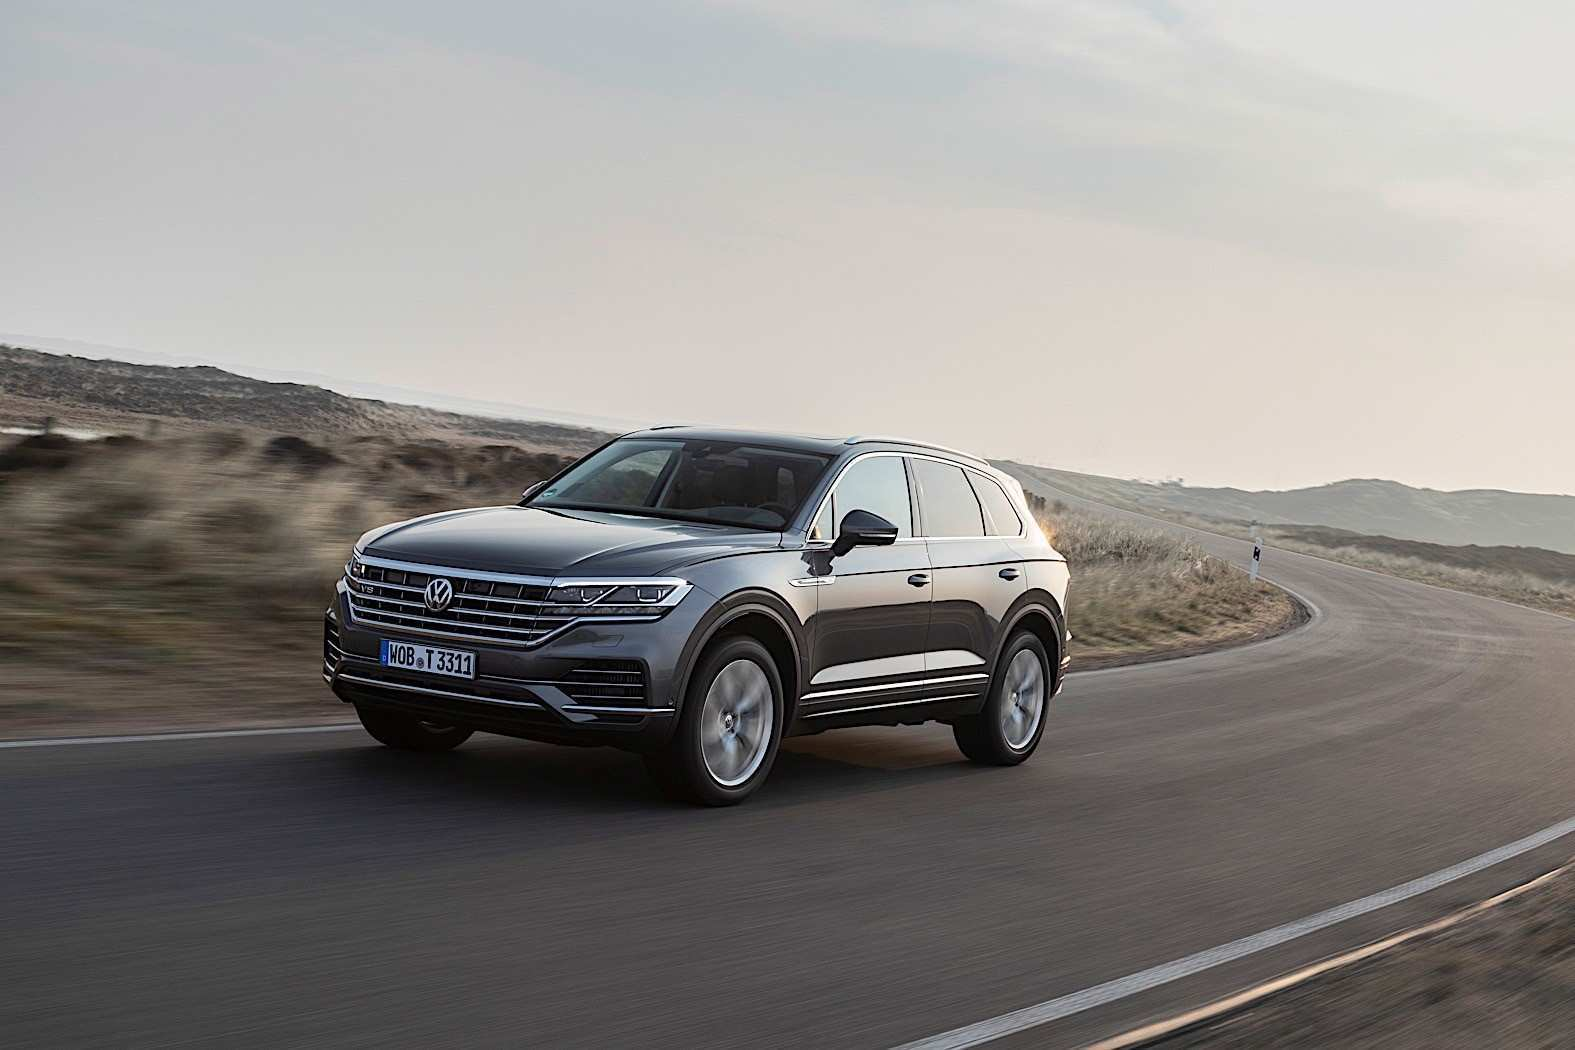 33 New 2020 Vw Touareg Tdi Ratings